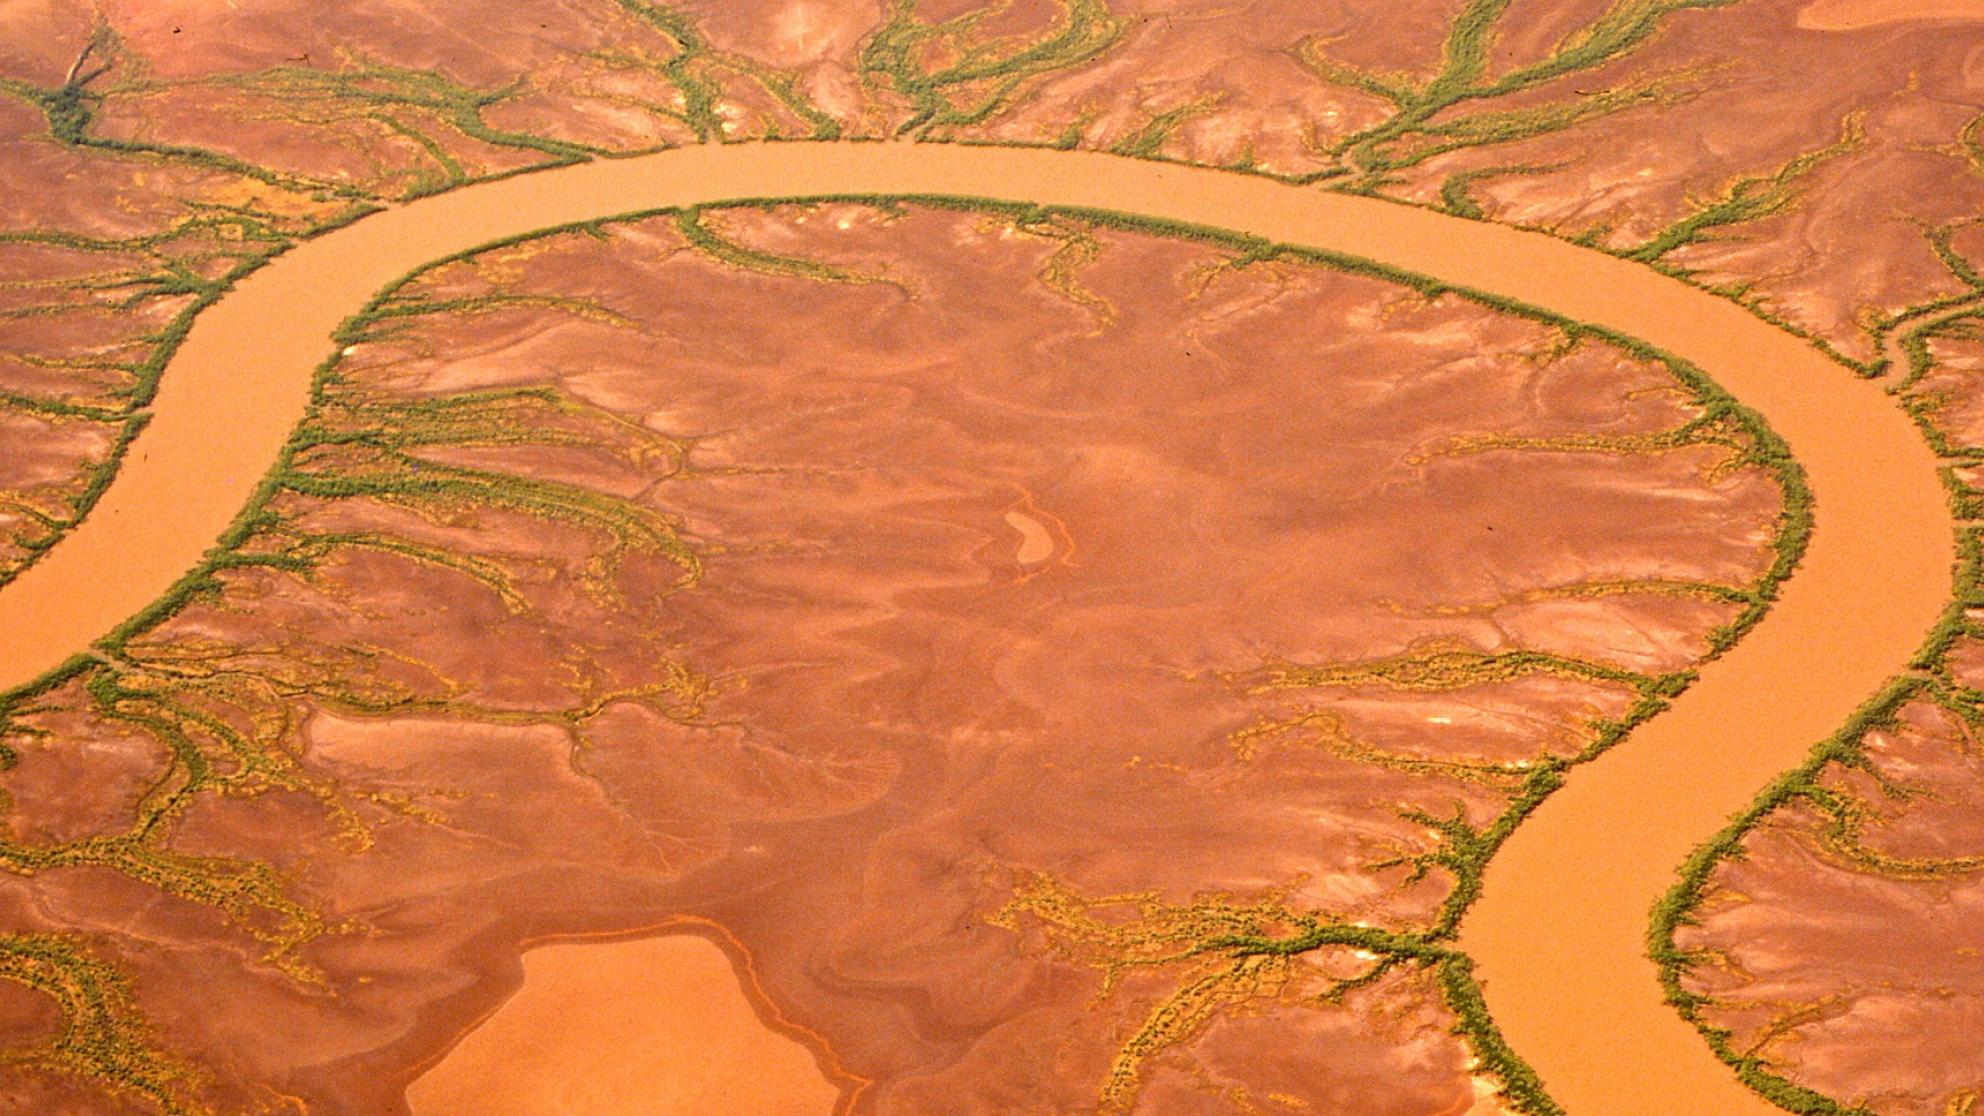 Aerial view of Australian desert with river